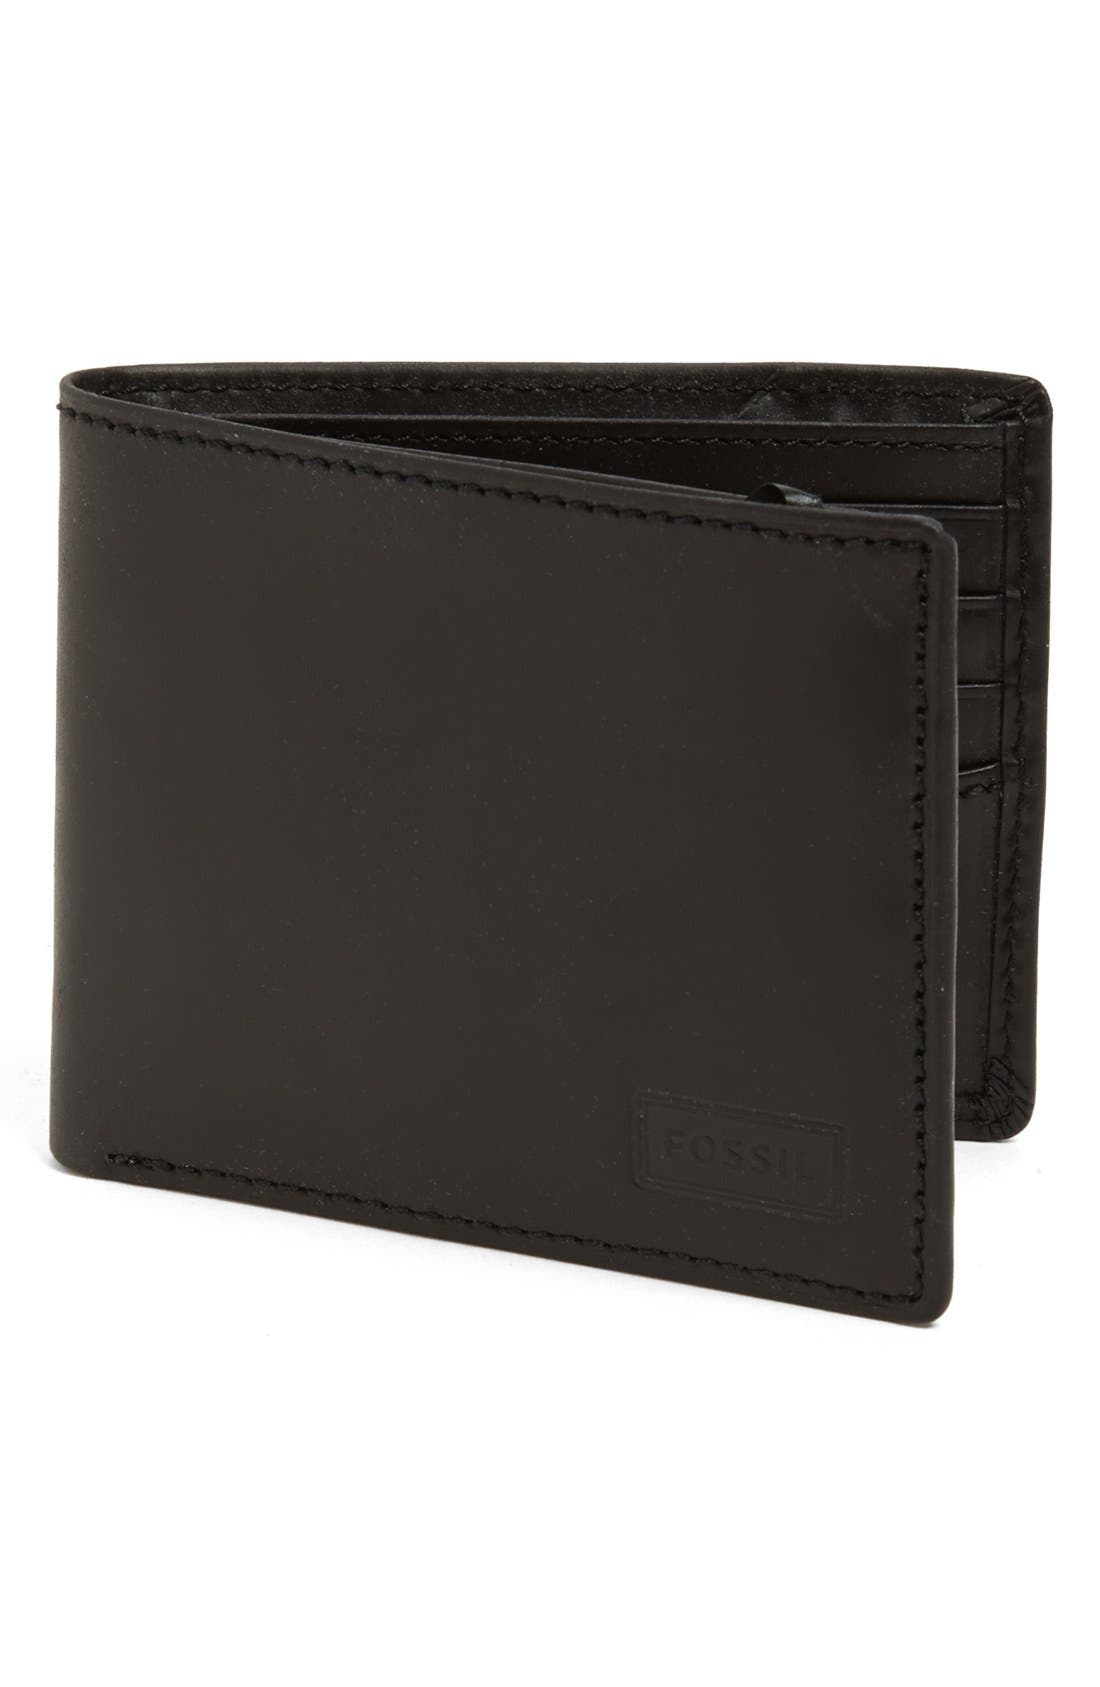 Main Image - Fossil 'Traveler' Leather Wallet